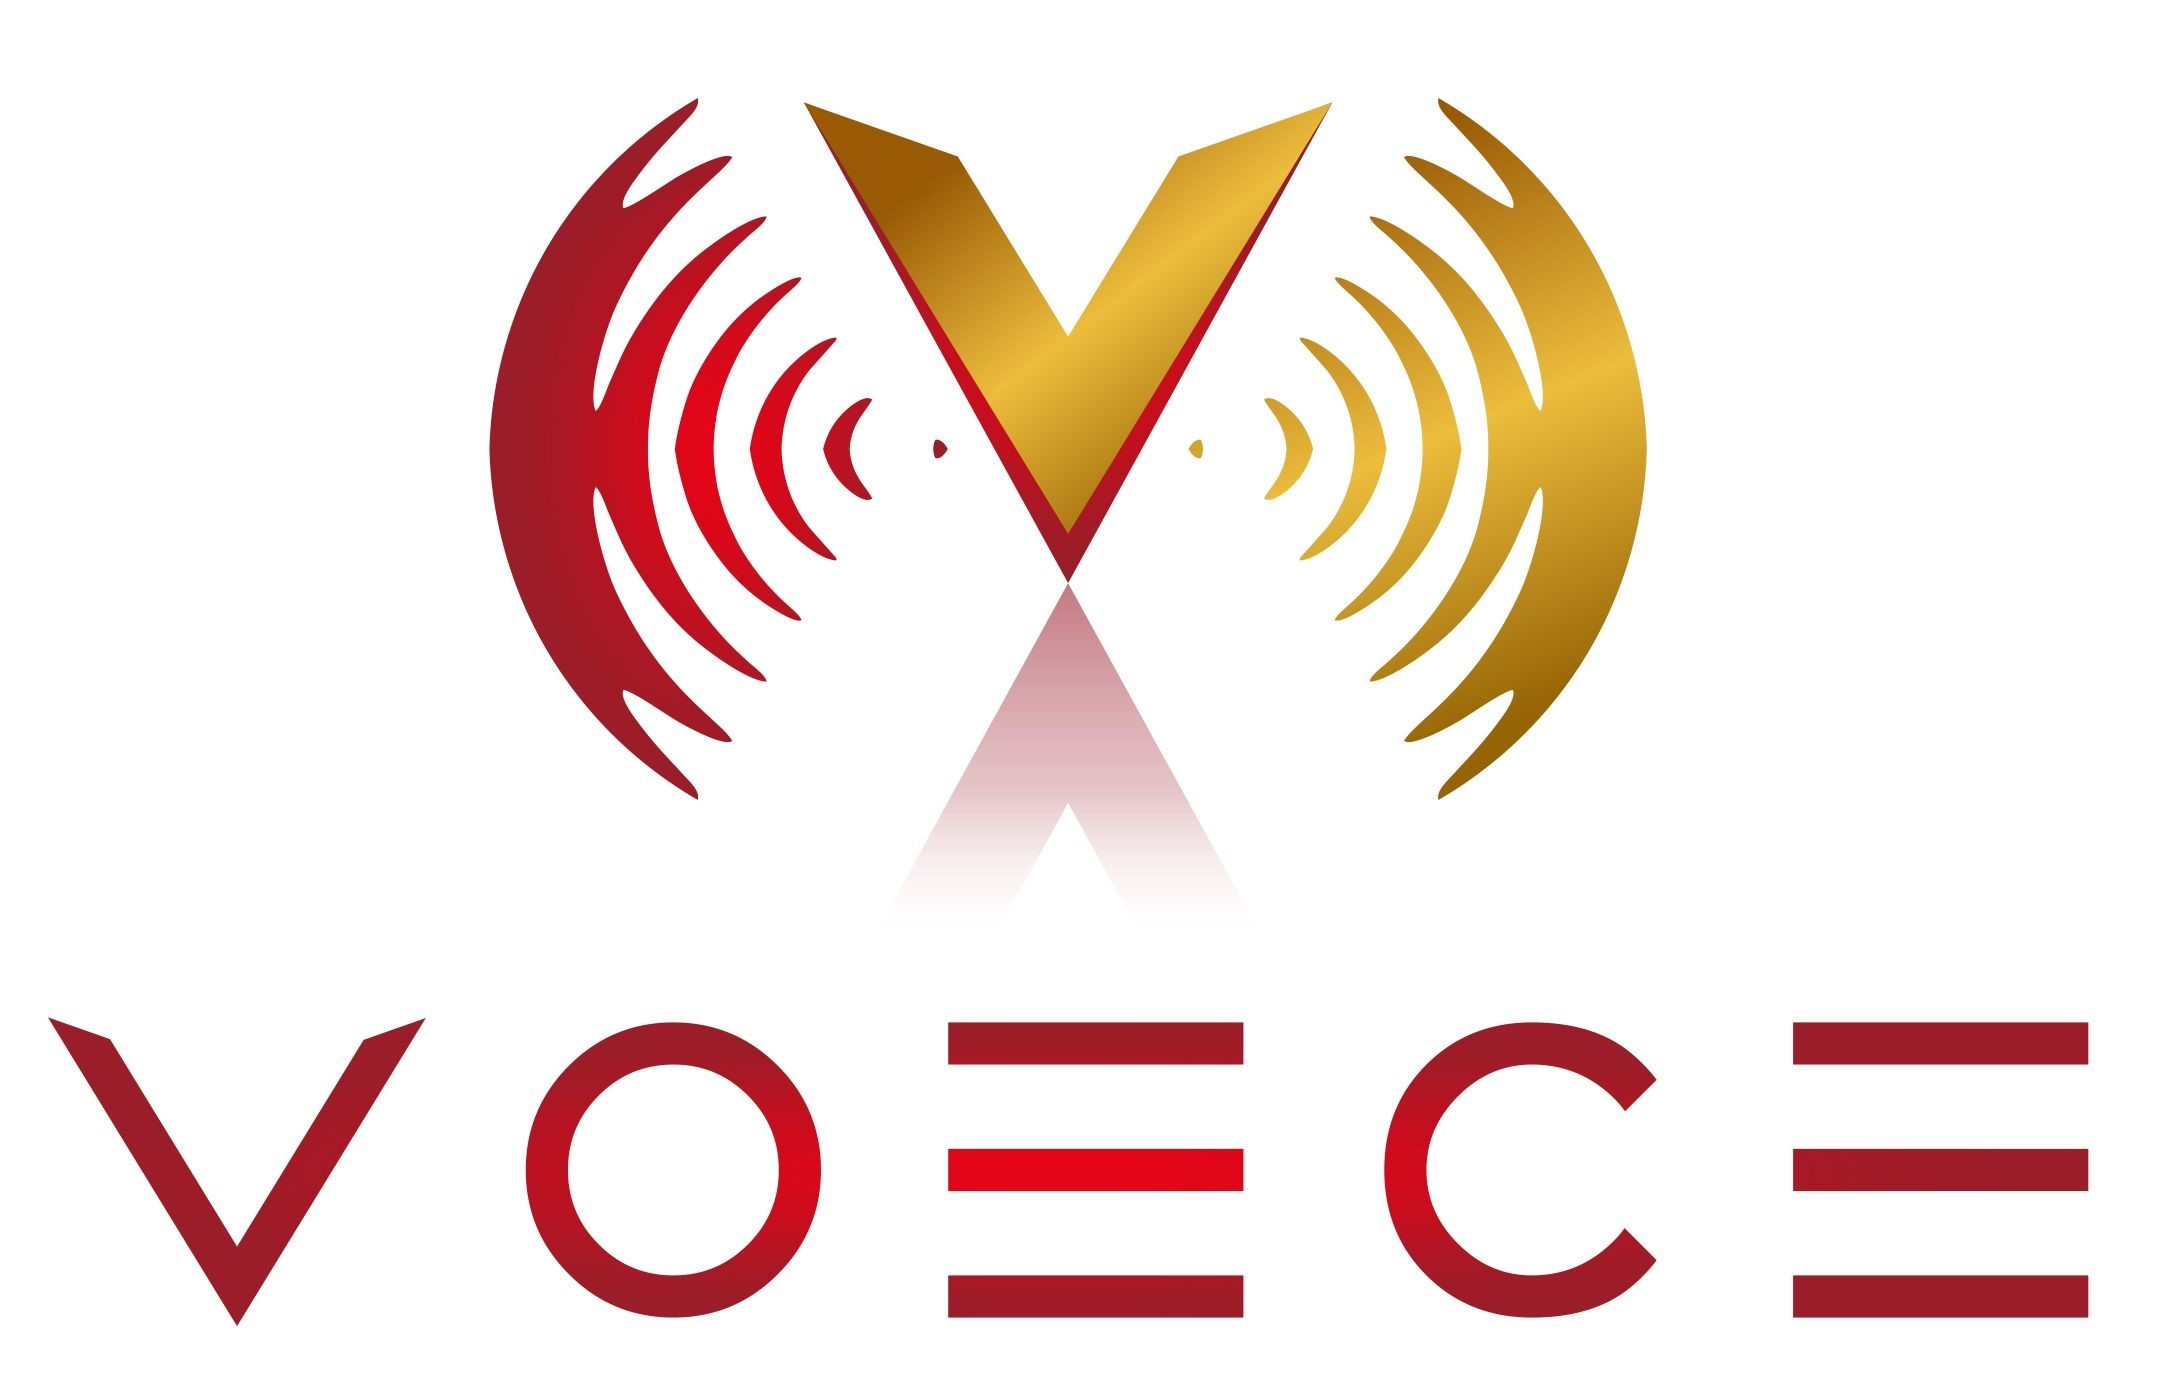 voece-large-logo